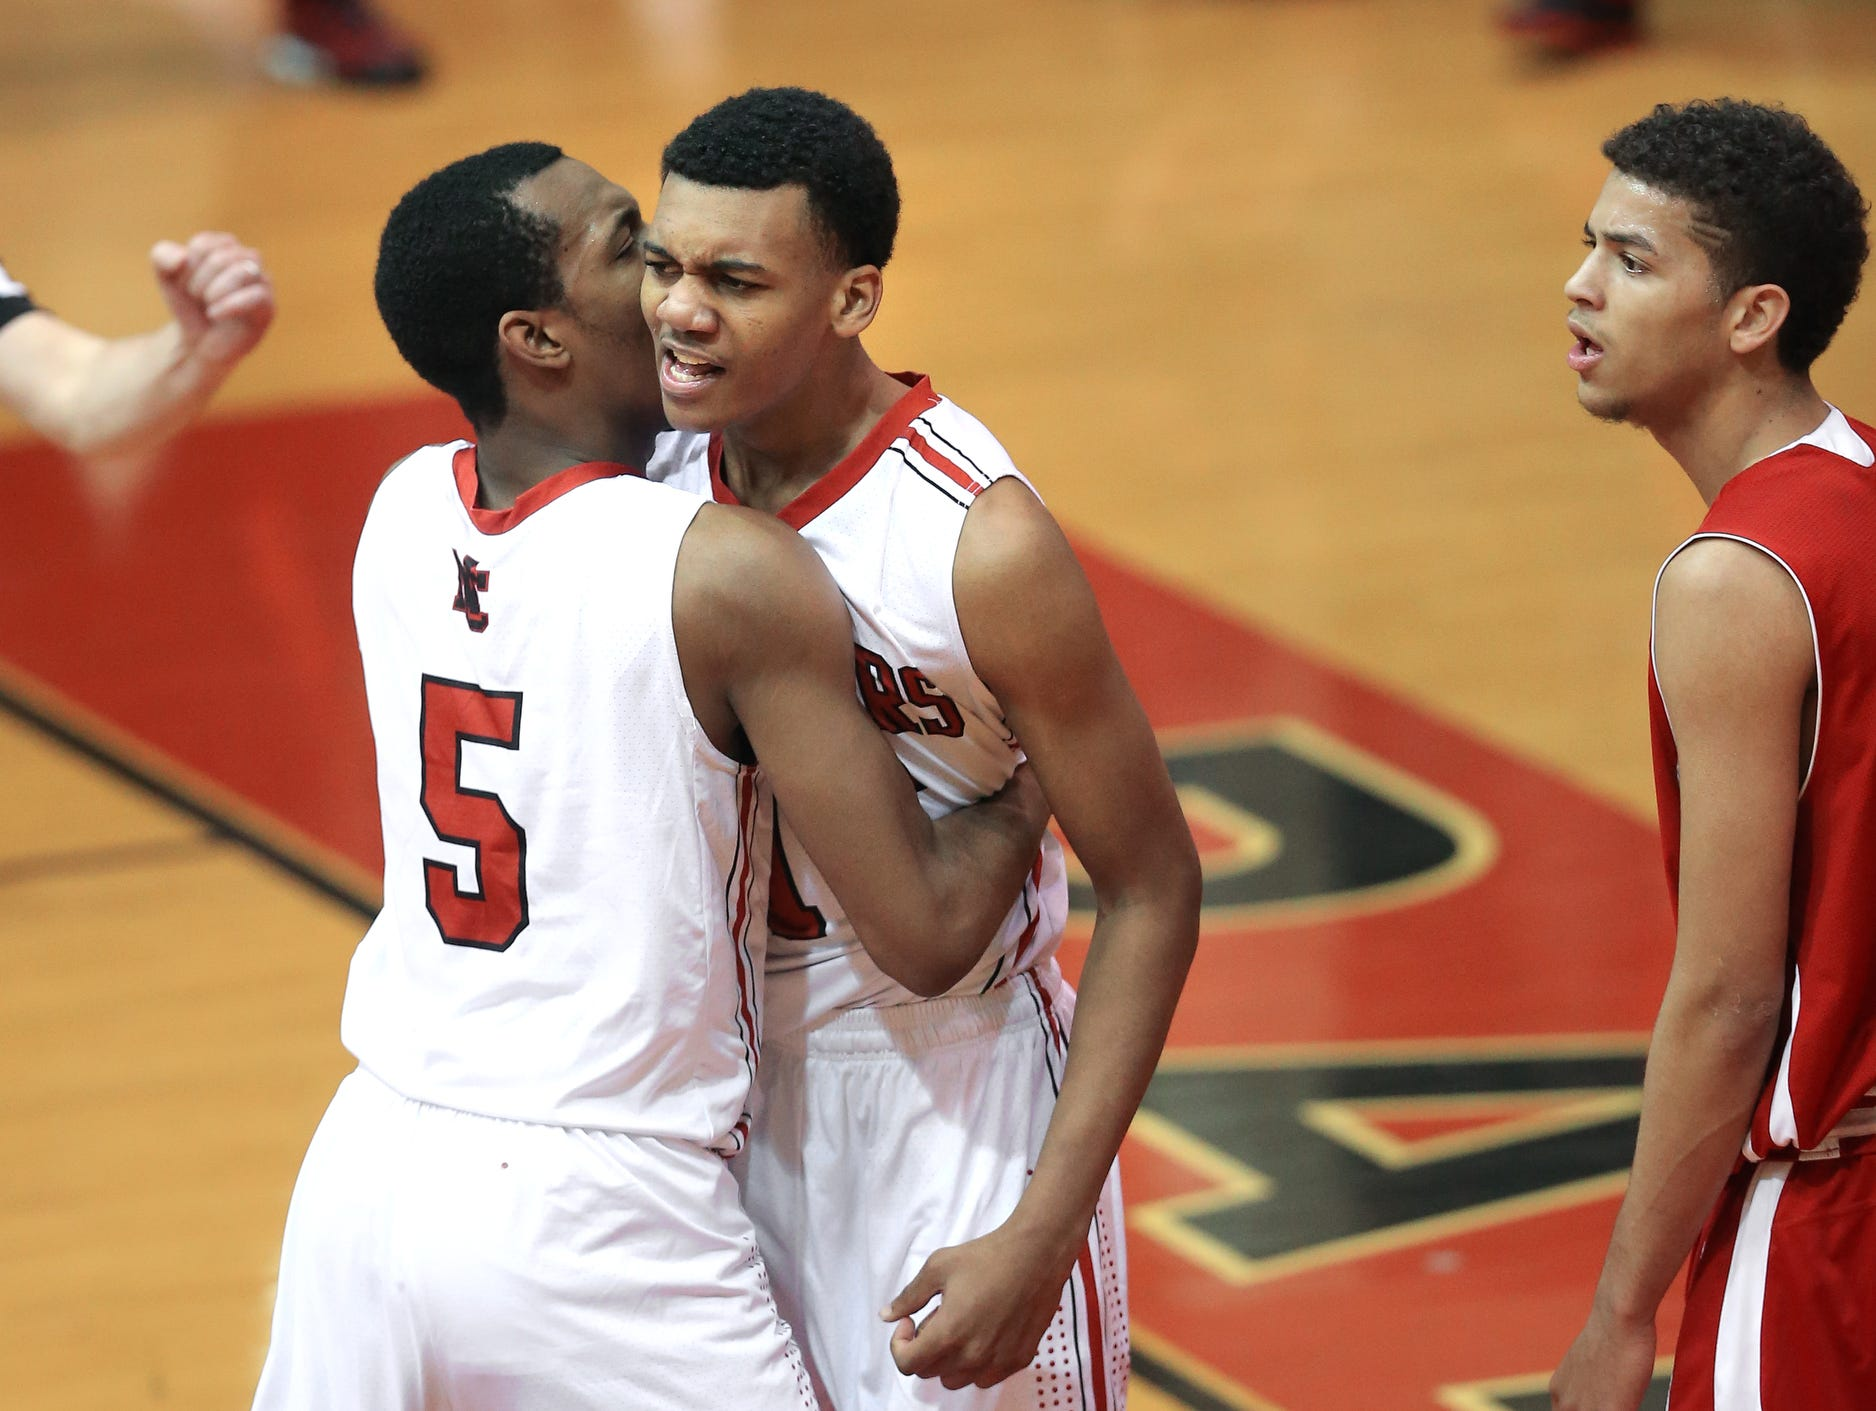 North Central's Antonio Singleton, right, celebrates a slam dunk with teammate Tyrie Johnson against East Chicago Central, Dec. 30, 2014.